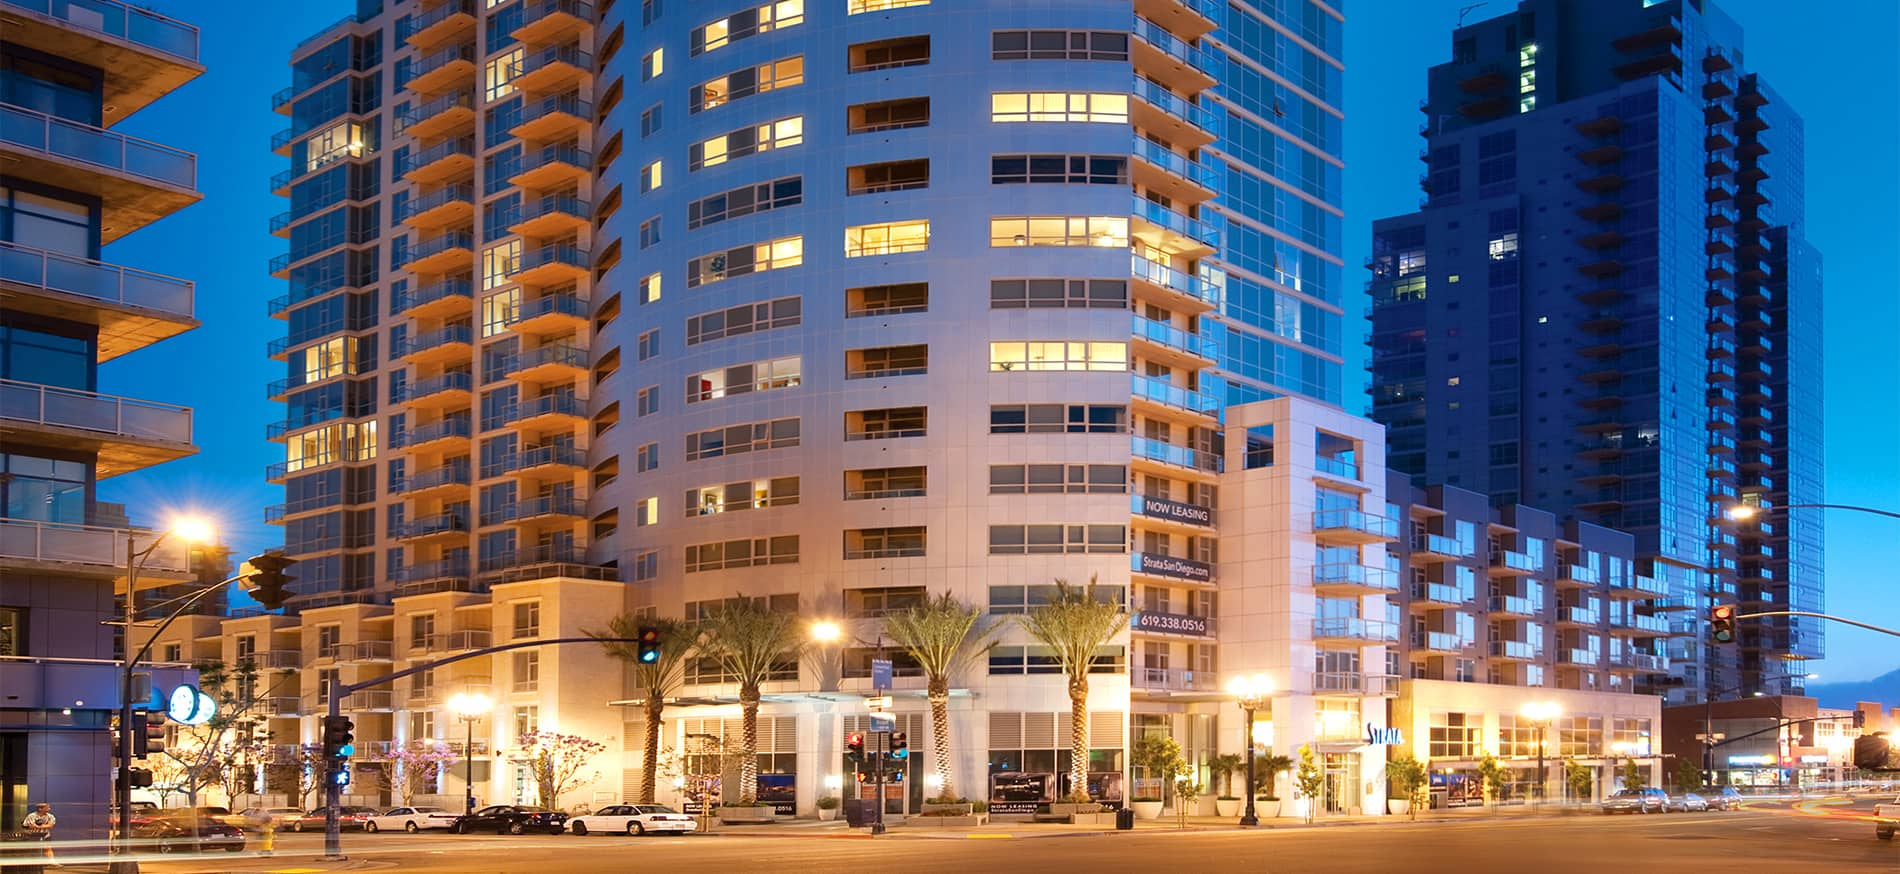 Strata Apartments In Downtown San Diego Ca